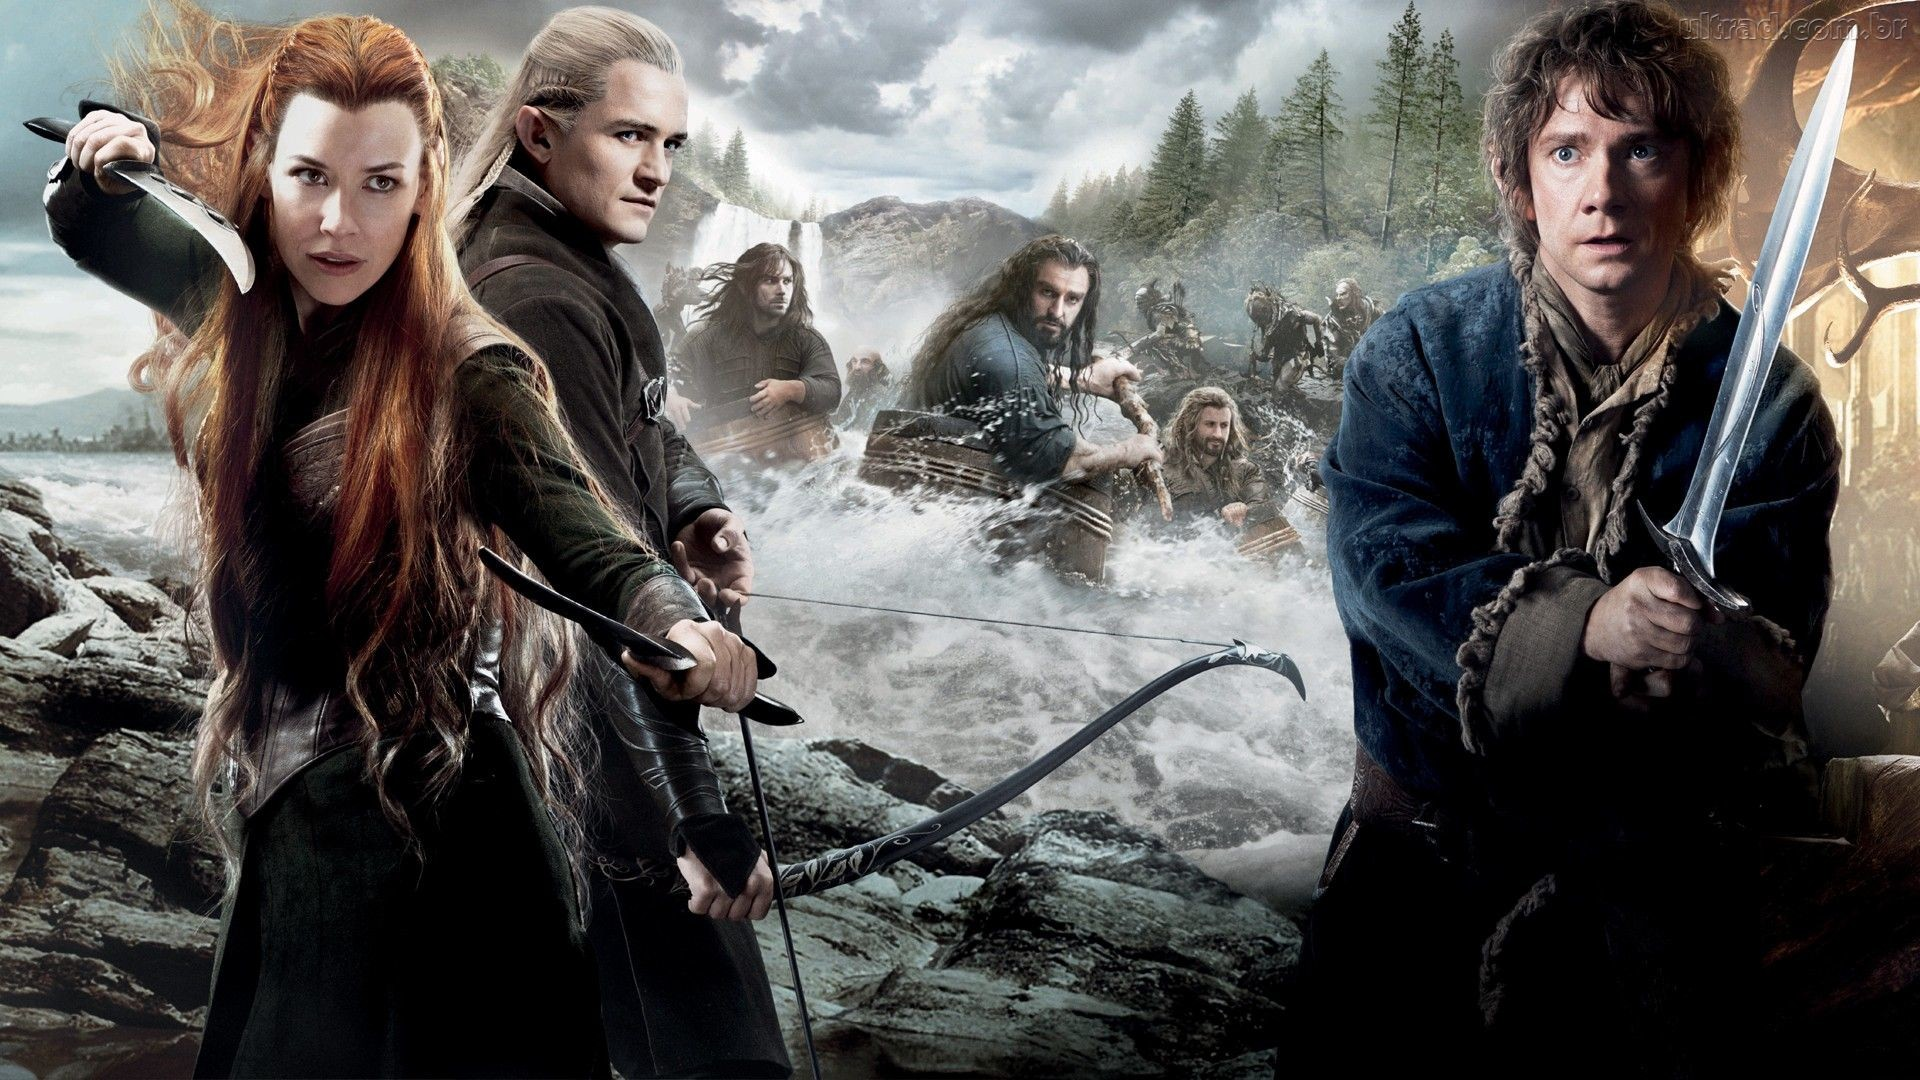 1920x1080 The Hobbit: The Battle Of The Five Armies Wallpapers hd